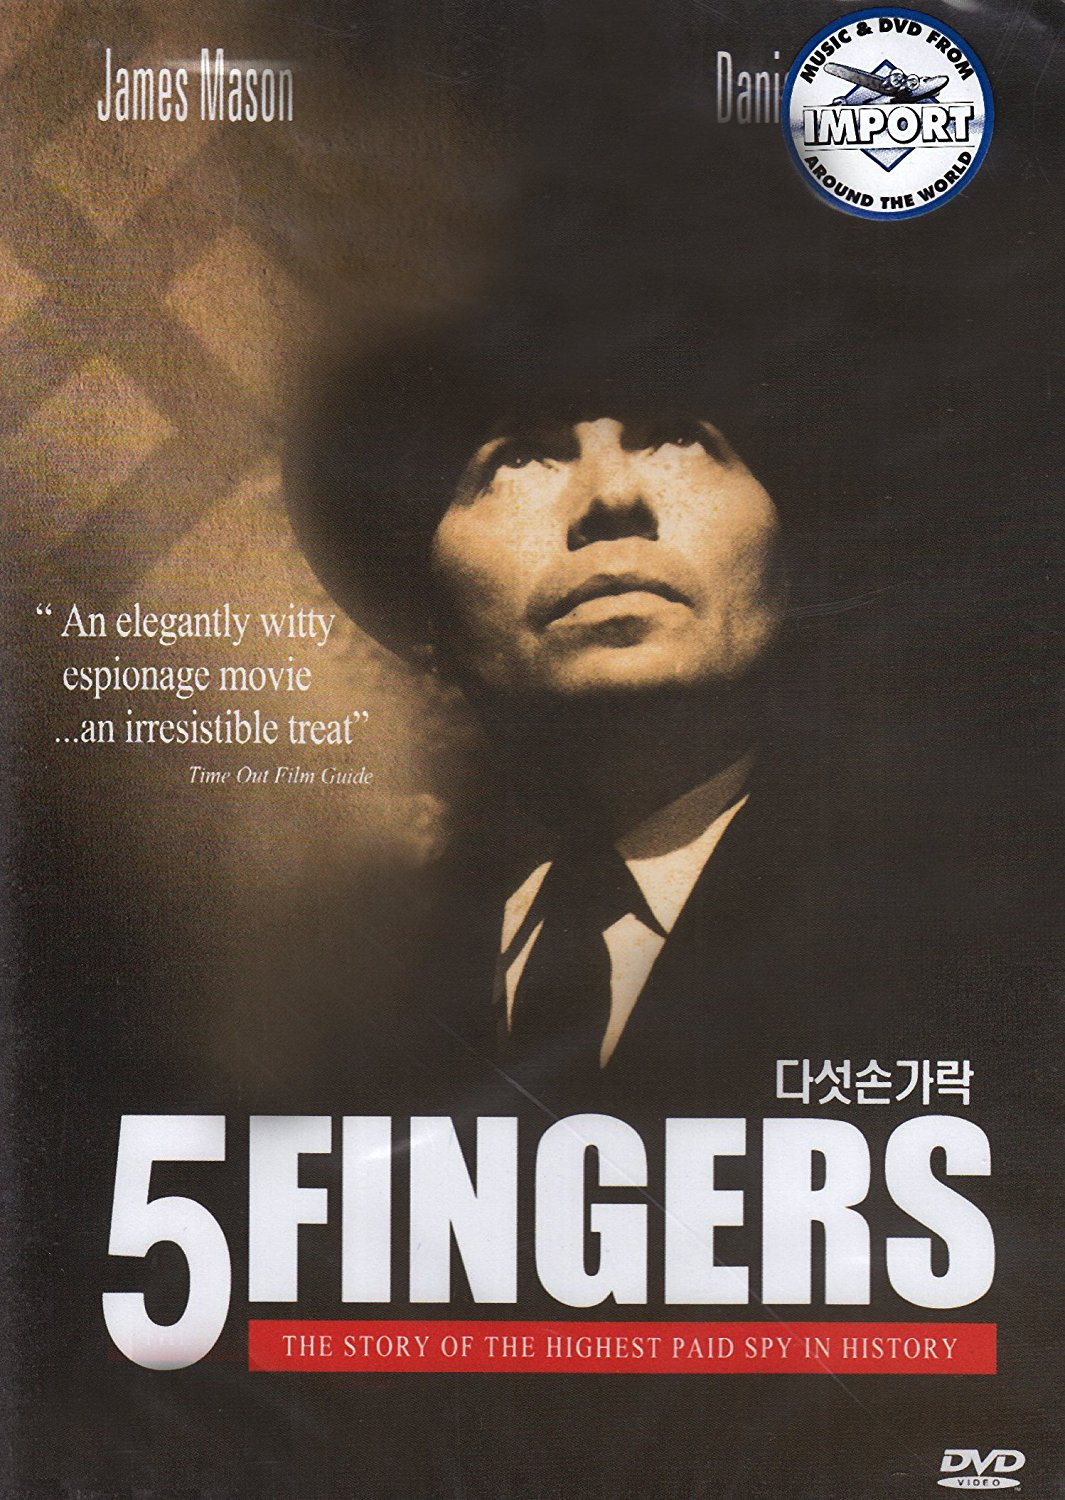 5 Fingers (1952) starring James Mason, Danielle Darrieux, Michael Rennie